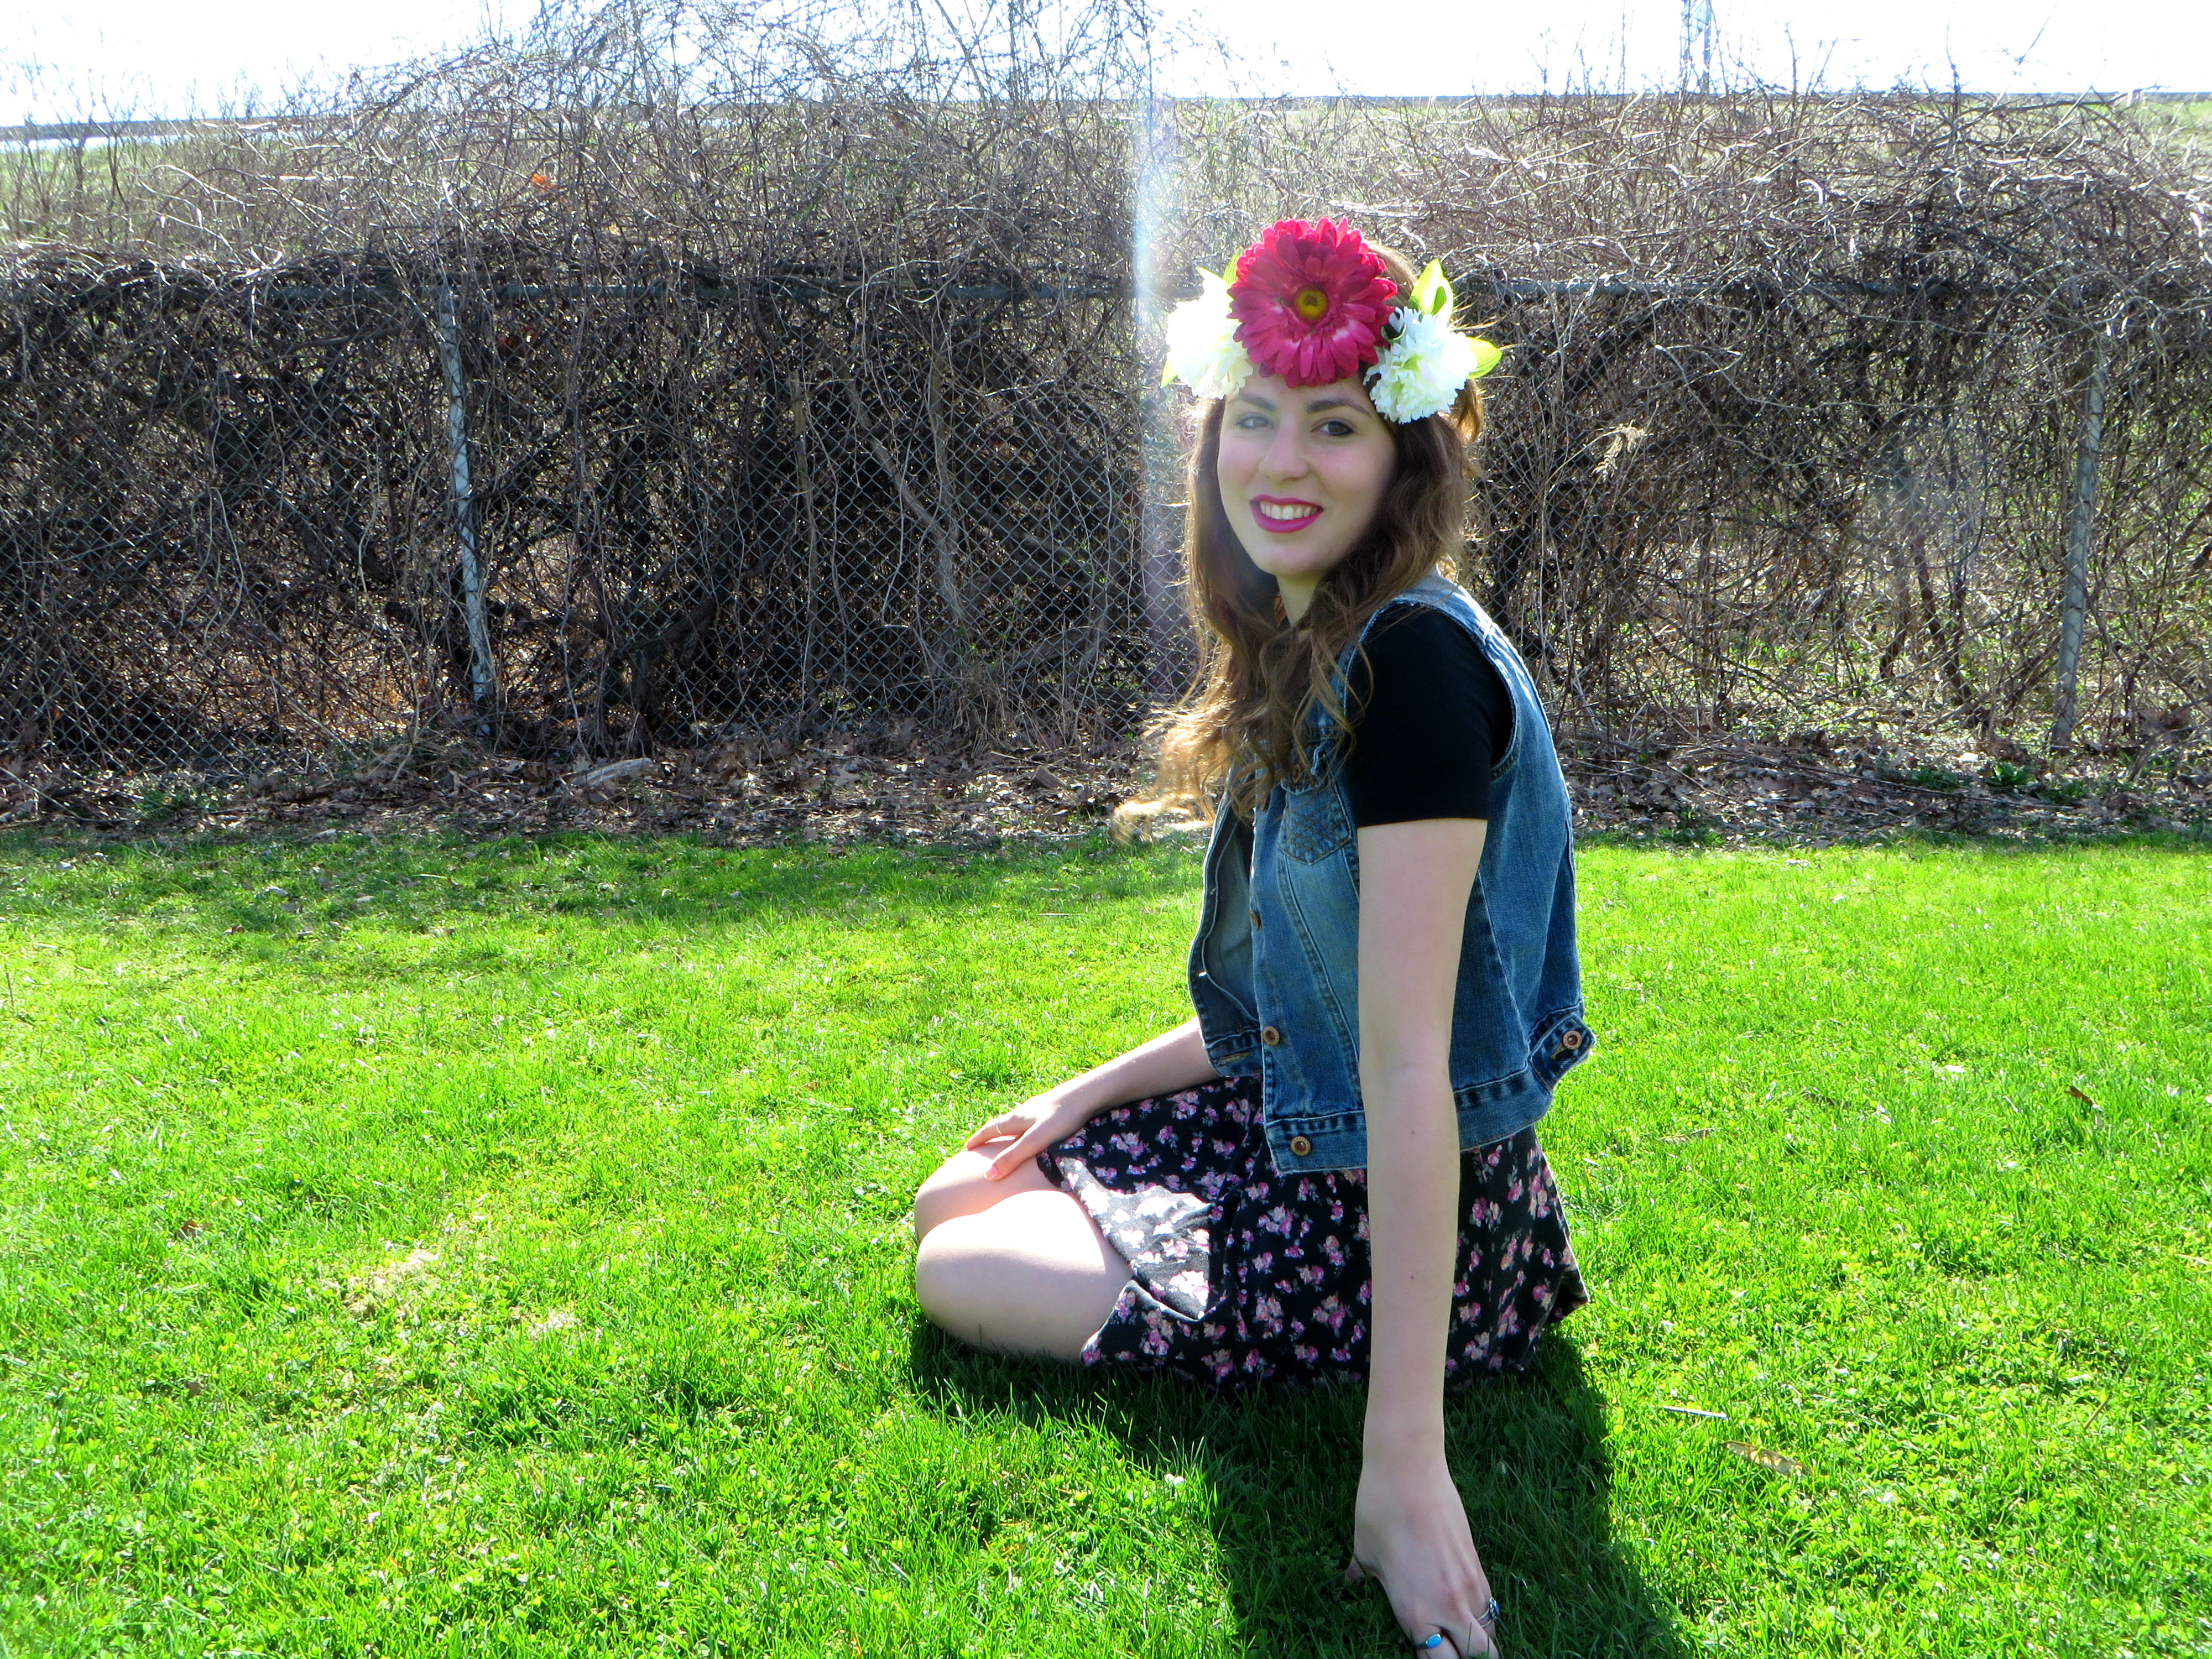 How to wear a flower crown color me kiki i had so much fun taking these pictures it was a gorgeous day out and everything is better in the sunlight its hard to stay stressed when its such a izmirmasajfo